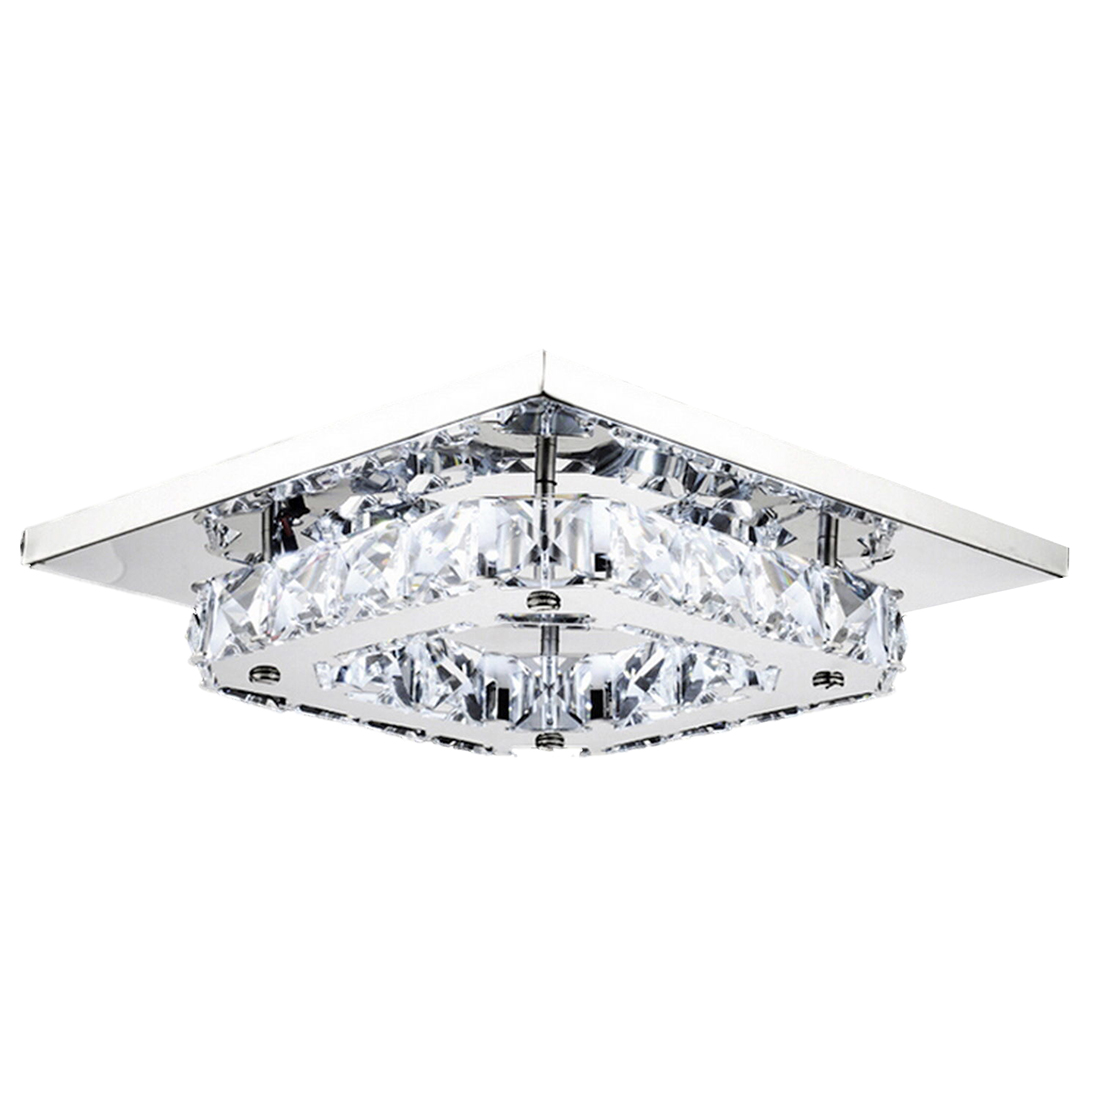 8 LED Crystal Flush Mount Modern Transparent Stainless Steel Ceiling Light Lamp